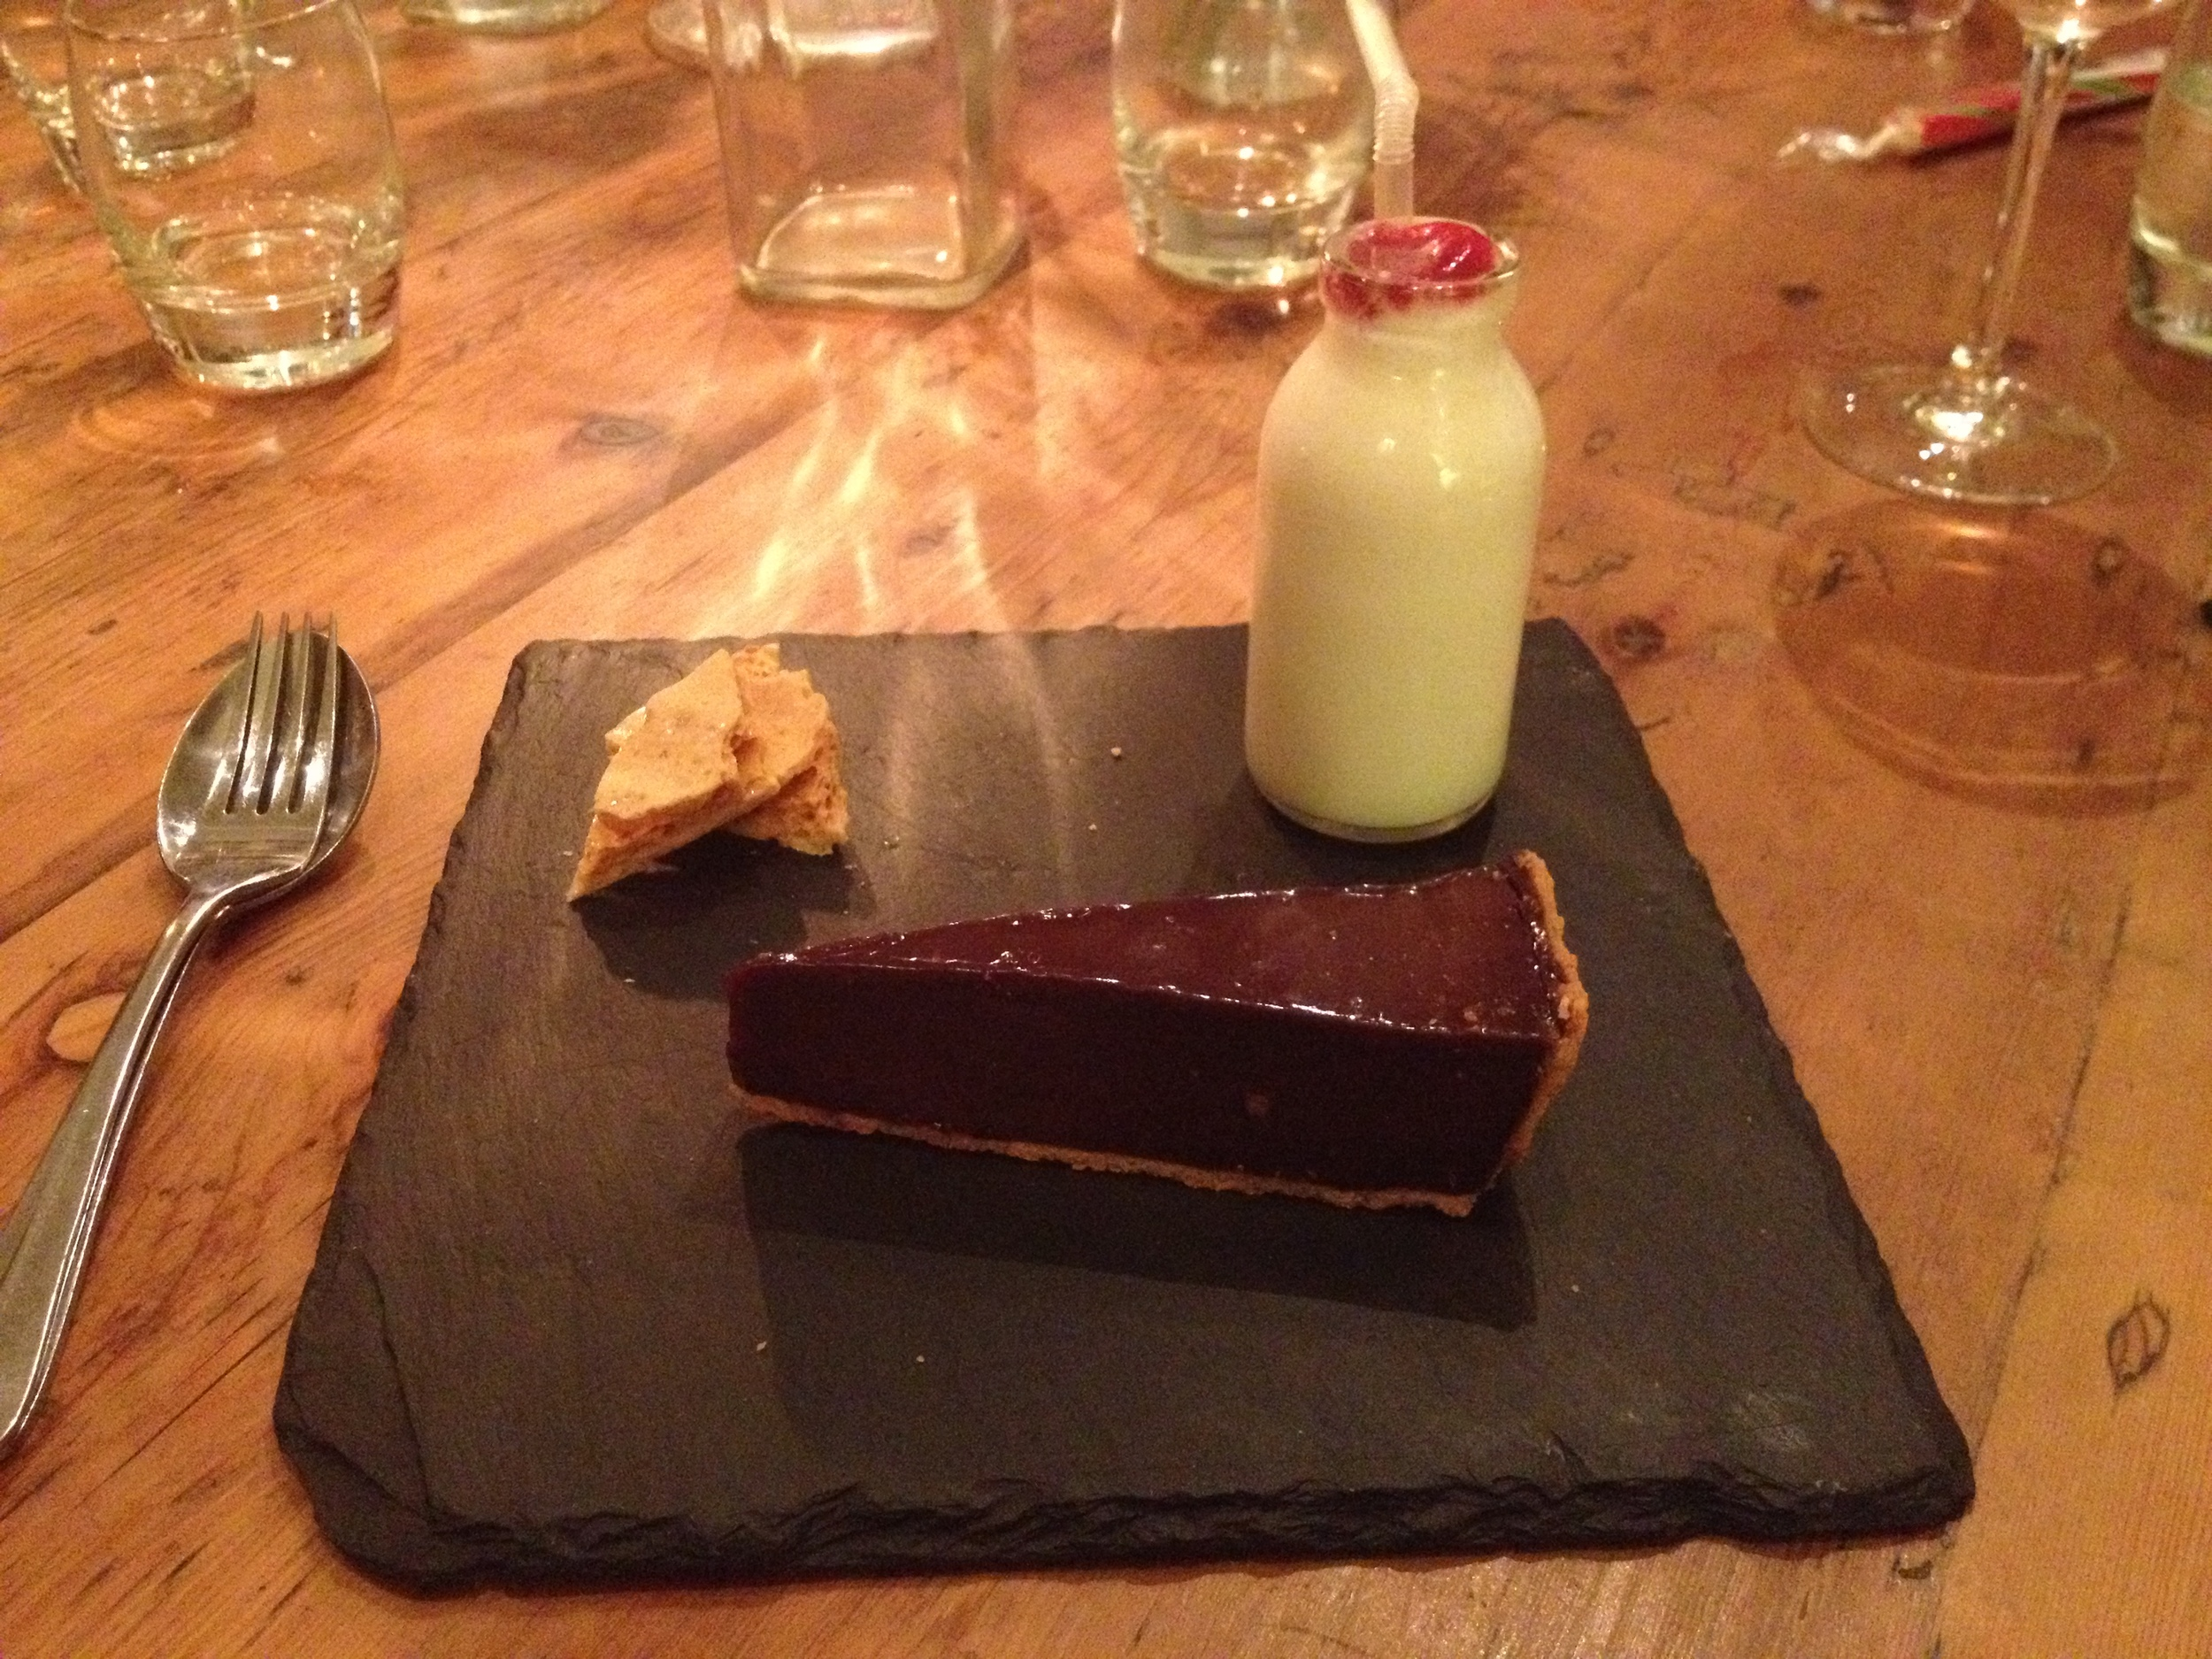 Dessert at the Duncombe Arms